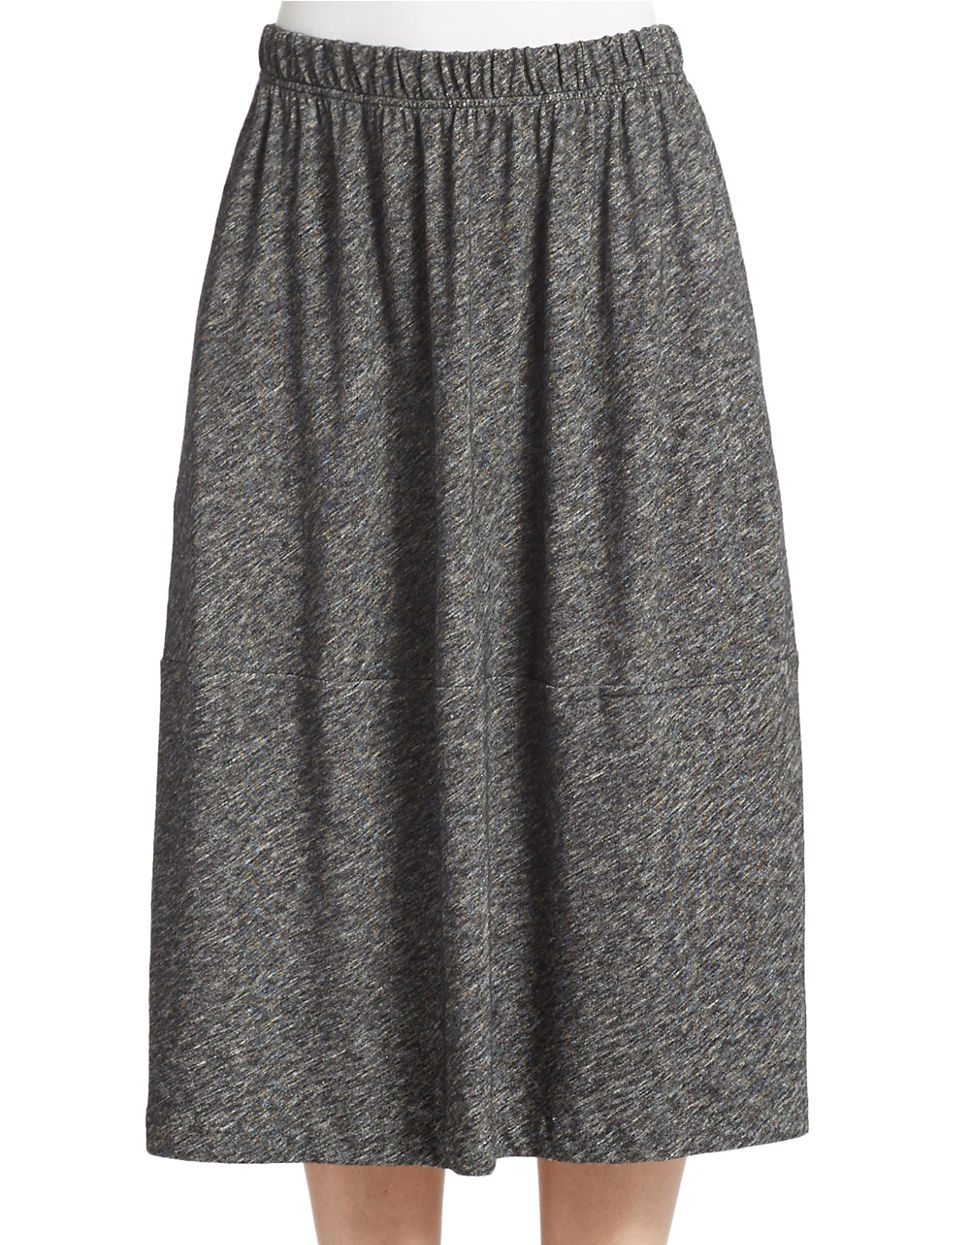 eileen fisher a line knit skirt in gray charcoal lyst